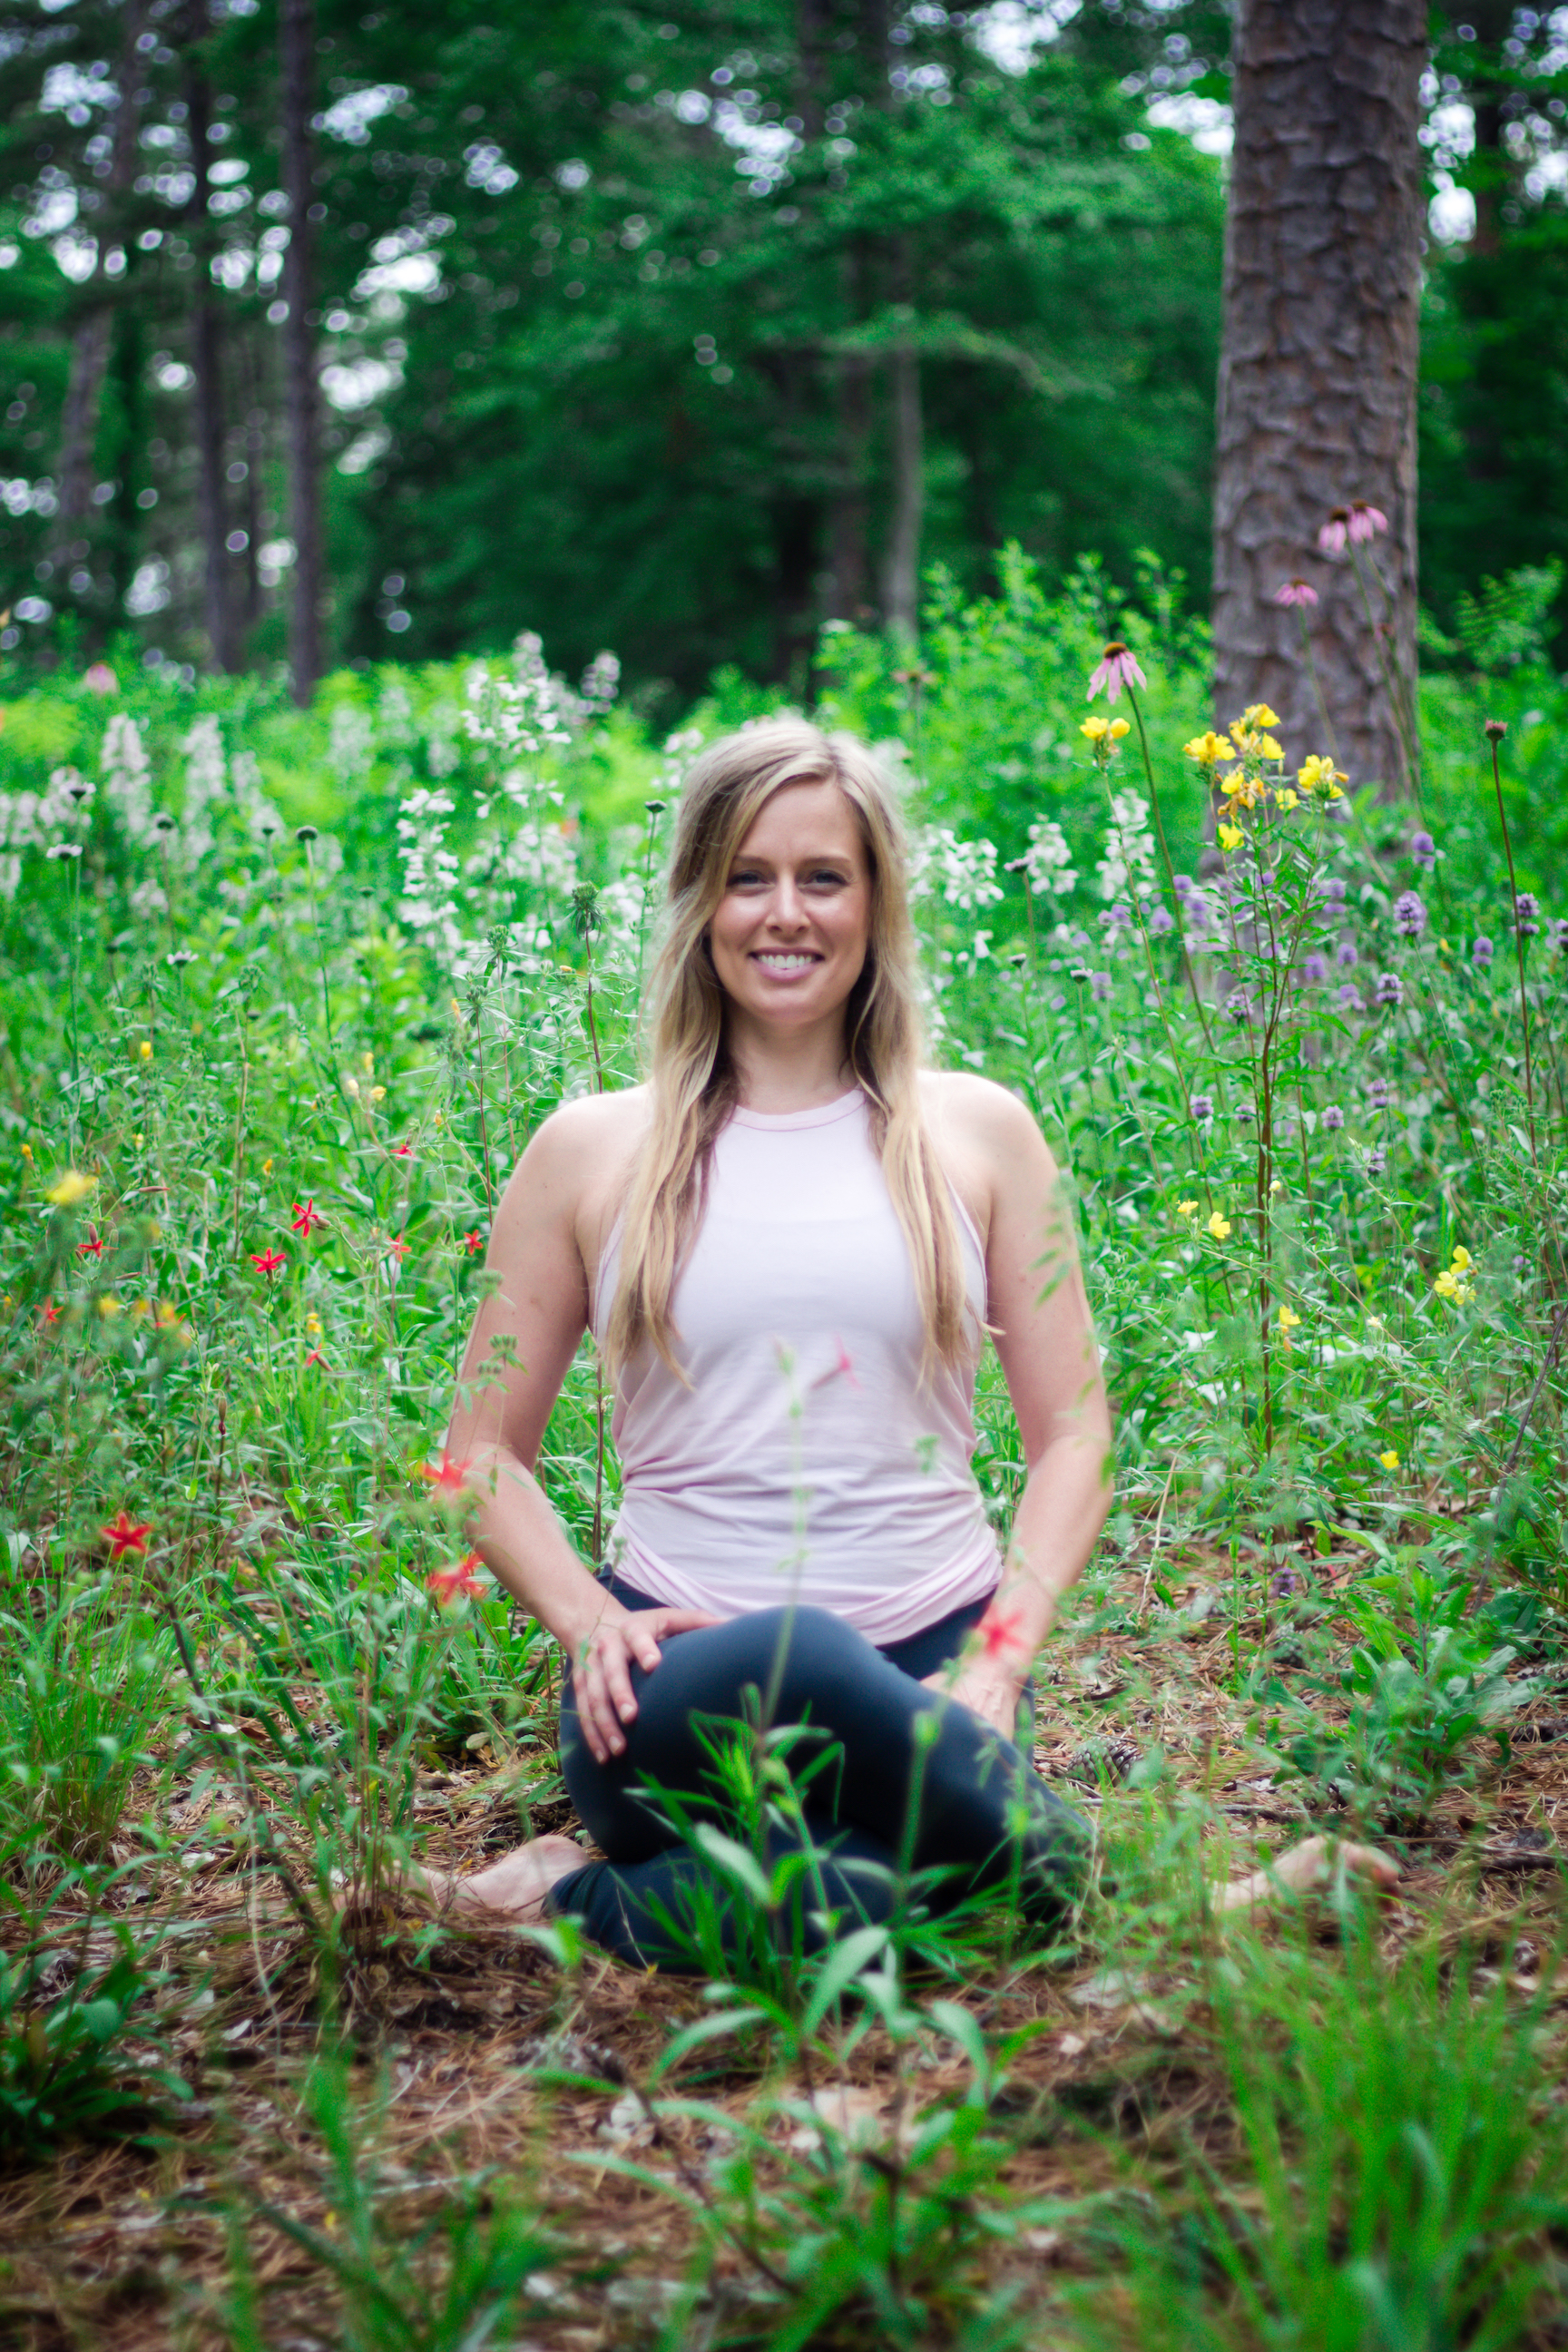 About OUR FOUNDER - Lindsay's life always has been centered around adventure. A graduate of both Outward Bound(NWOBSInstructor Development Course 2017) and NOLS(Yukon Territory 2004)Lindsay believes that the path to growth requires you to get out of your comfort zone.It's that spirit that led her to cycle across the United States twice, run 14 half marathons and summit mountains in four continents, all while pursuing a Master's in Public Health and climbing the rungs as a healthcare communications and marketing professional.It's also what led her to 200-hour yoga teacher training with Hot Asana Yoga University, where she learned that stillness is more challenging – more audacious and profoundly impactful – than running, biking, hiking or climbing the corporate ladder.In 2018, Lindsay founded Taproot Retreats in Durham, N.C., to bring people, places and purpose together in a way that inspires, heals and uplifts.